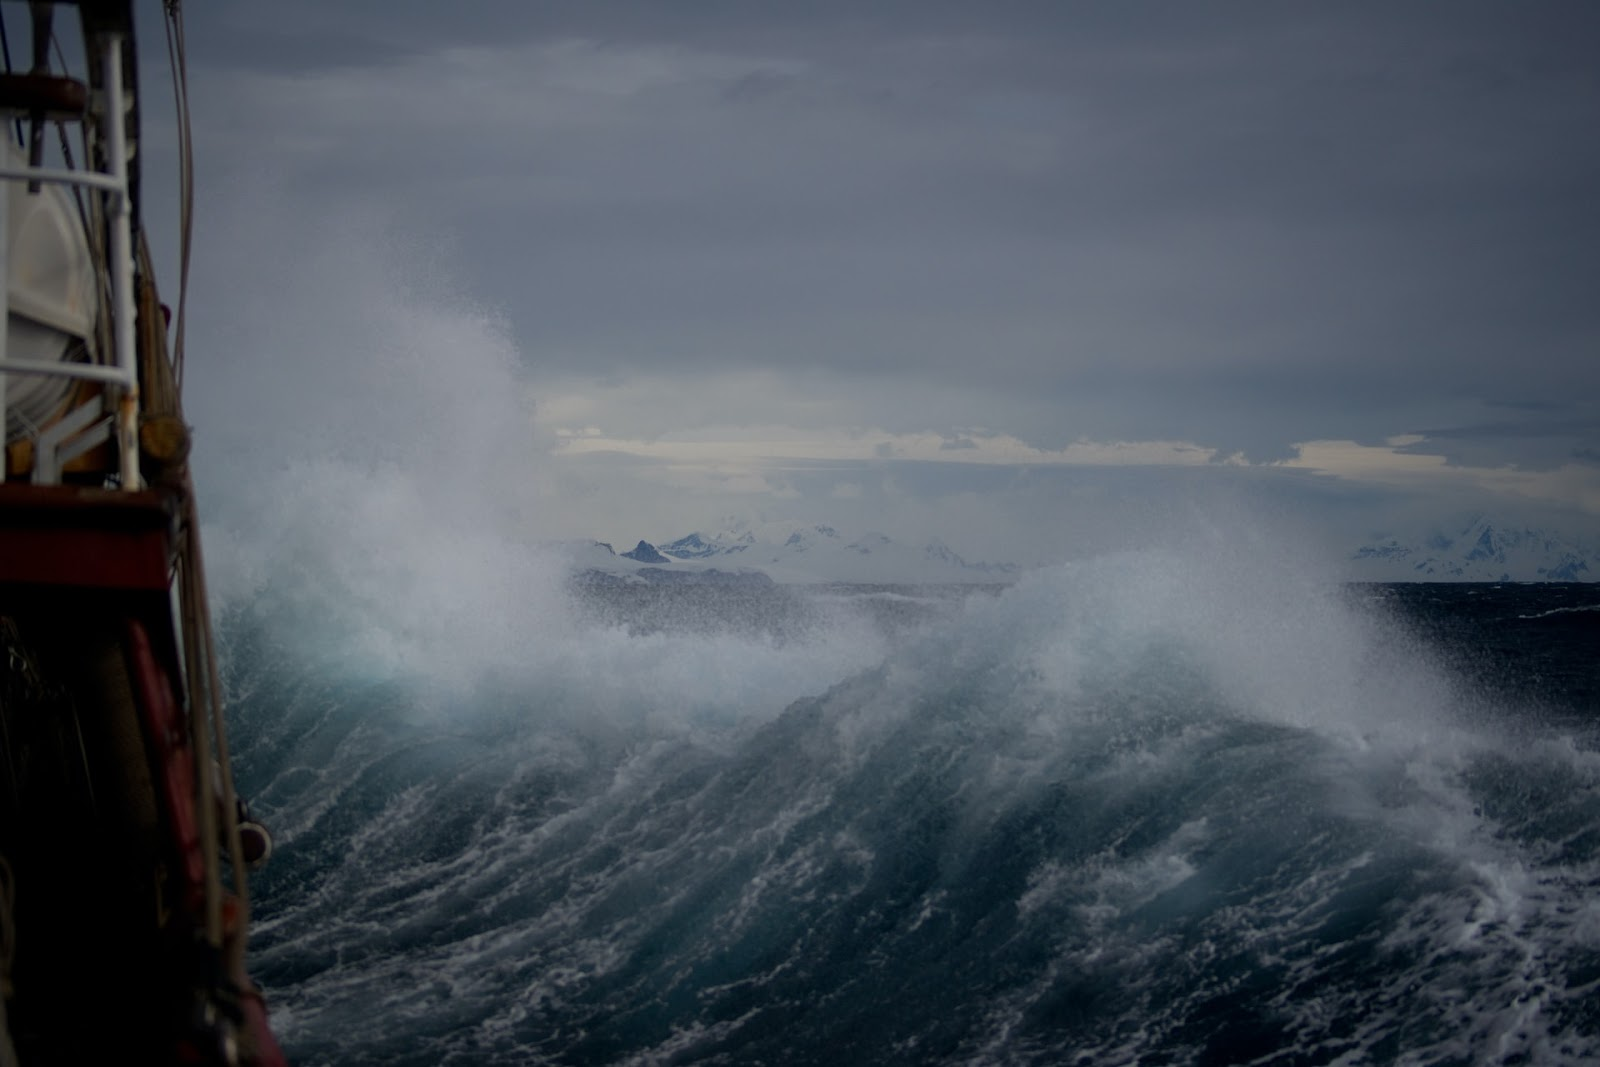 a boat on a raging storm